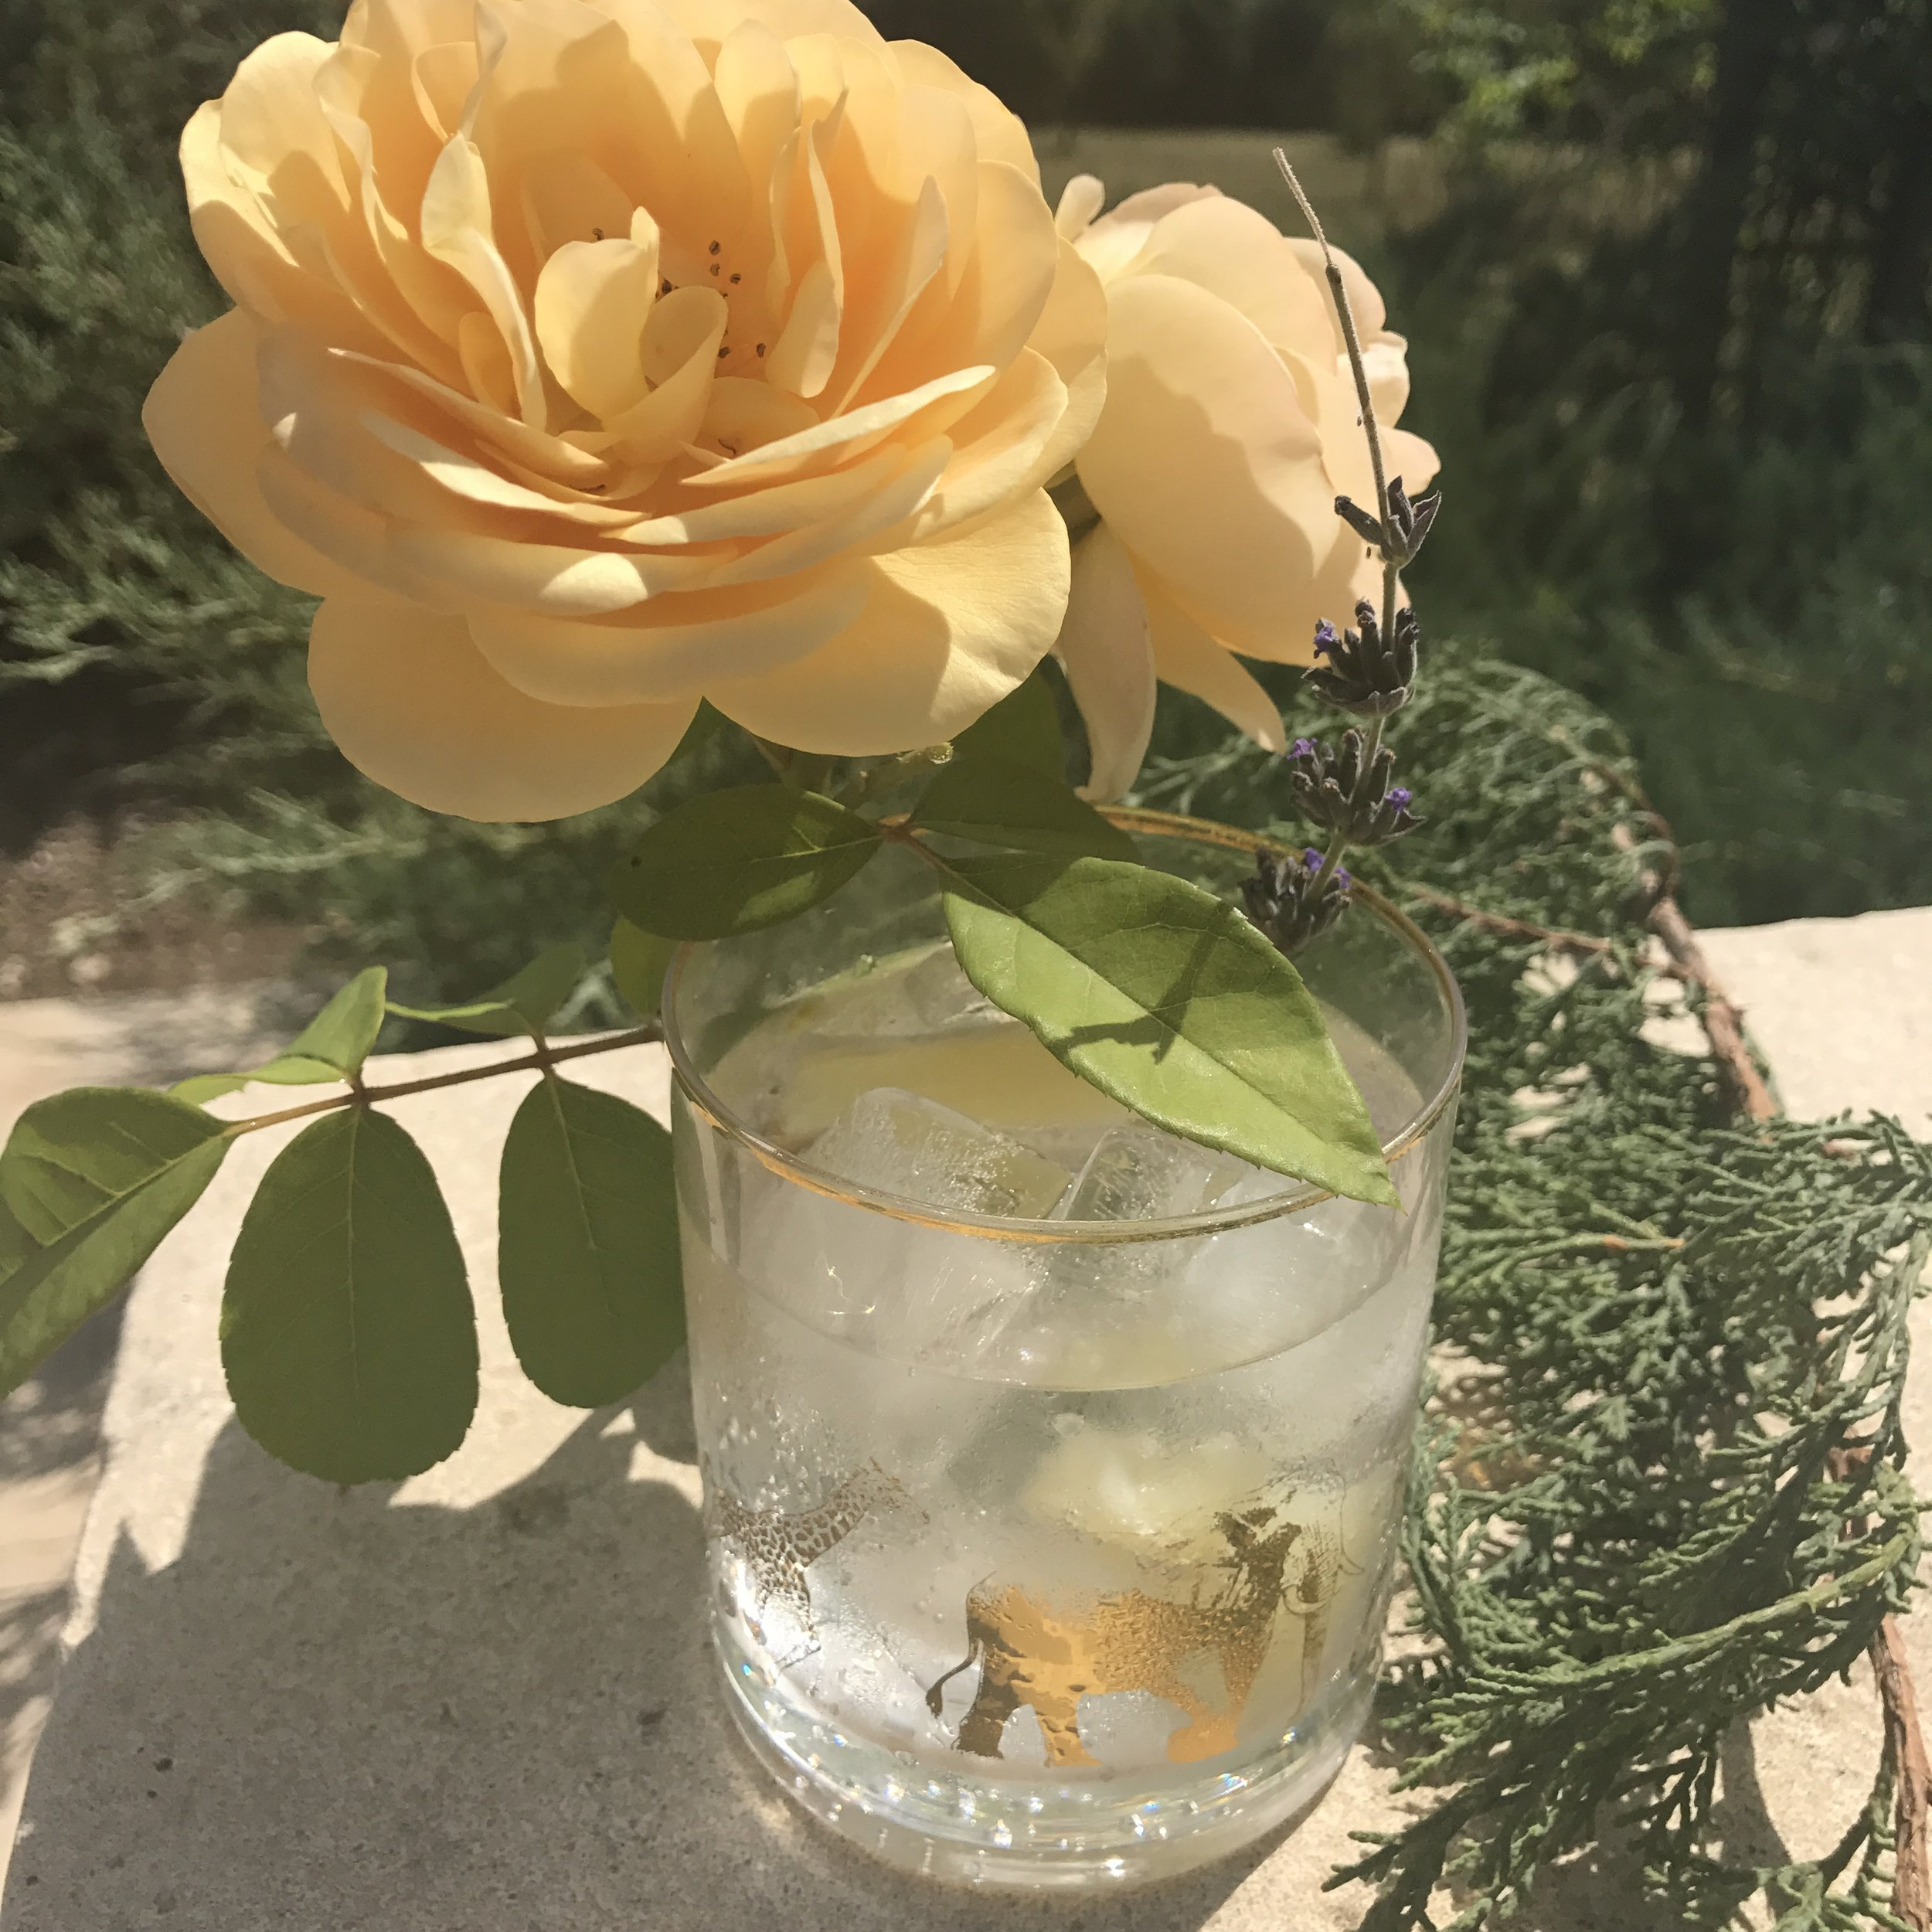 Gin in the South of France... Bliss